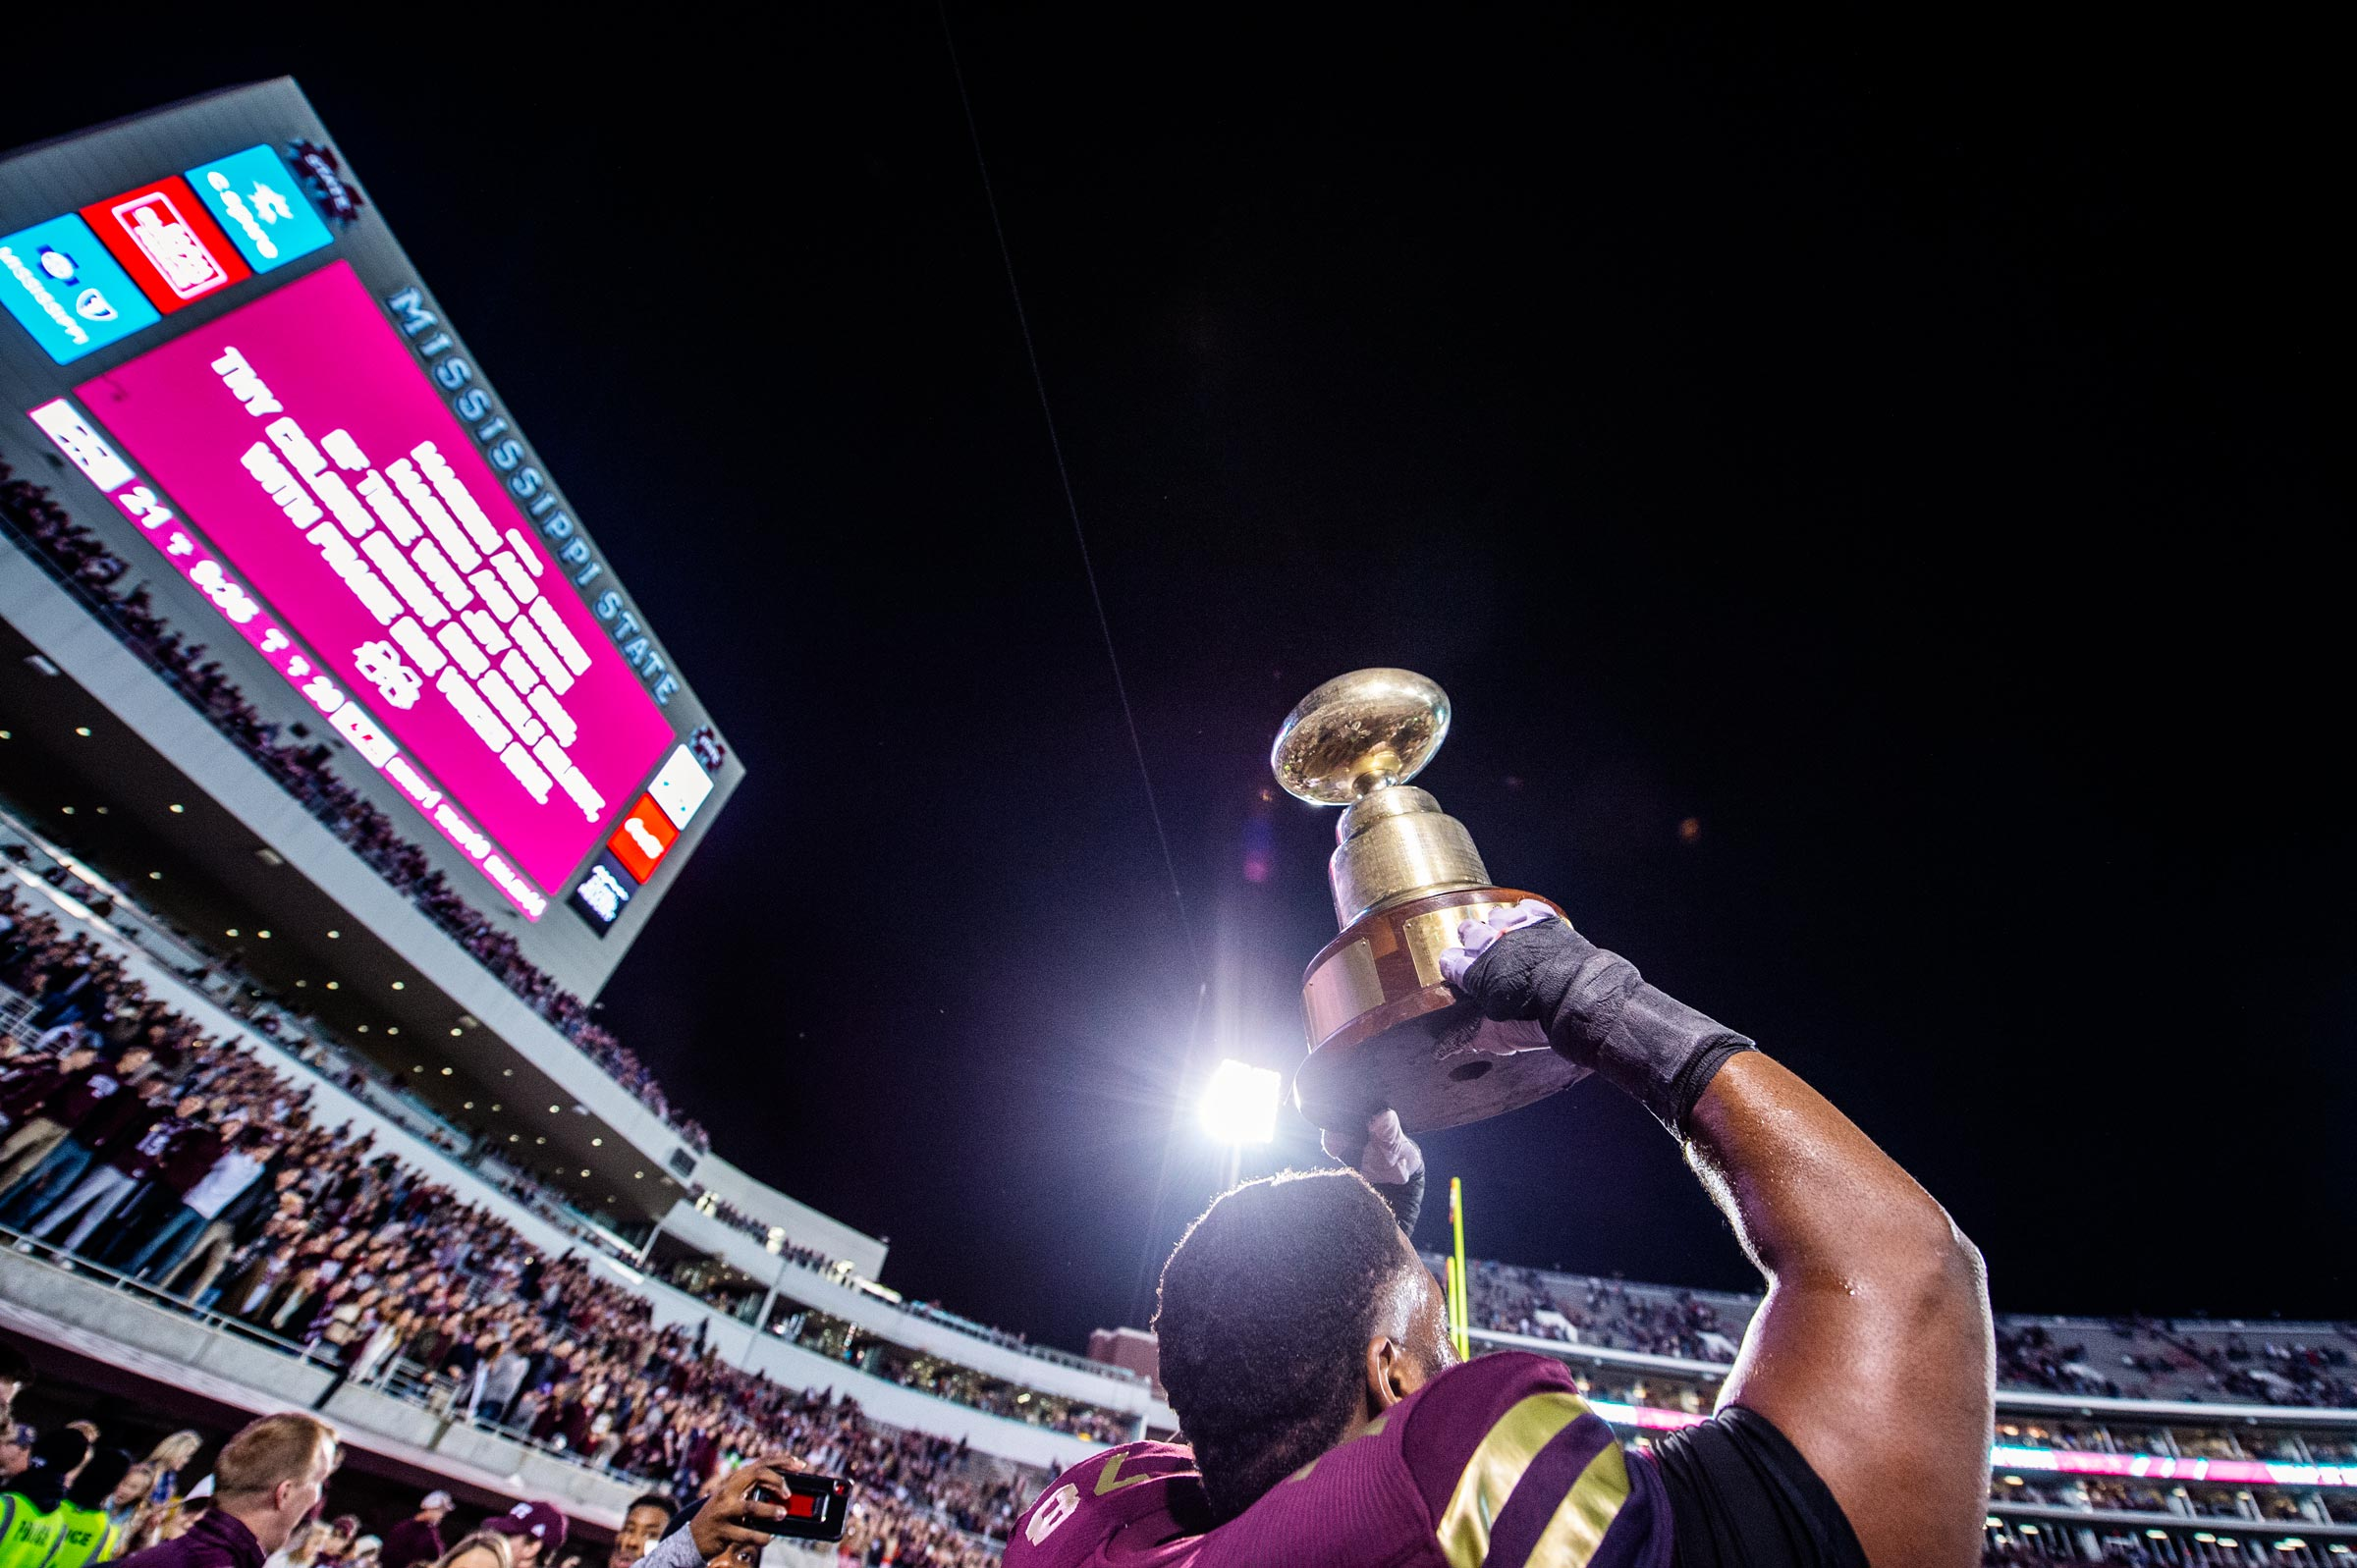 With the nighttime Davis Wade Stadium wrapping around him, an MSU player holds the Egg Bowl trophy high over his head in celebration